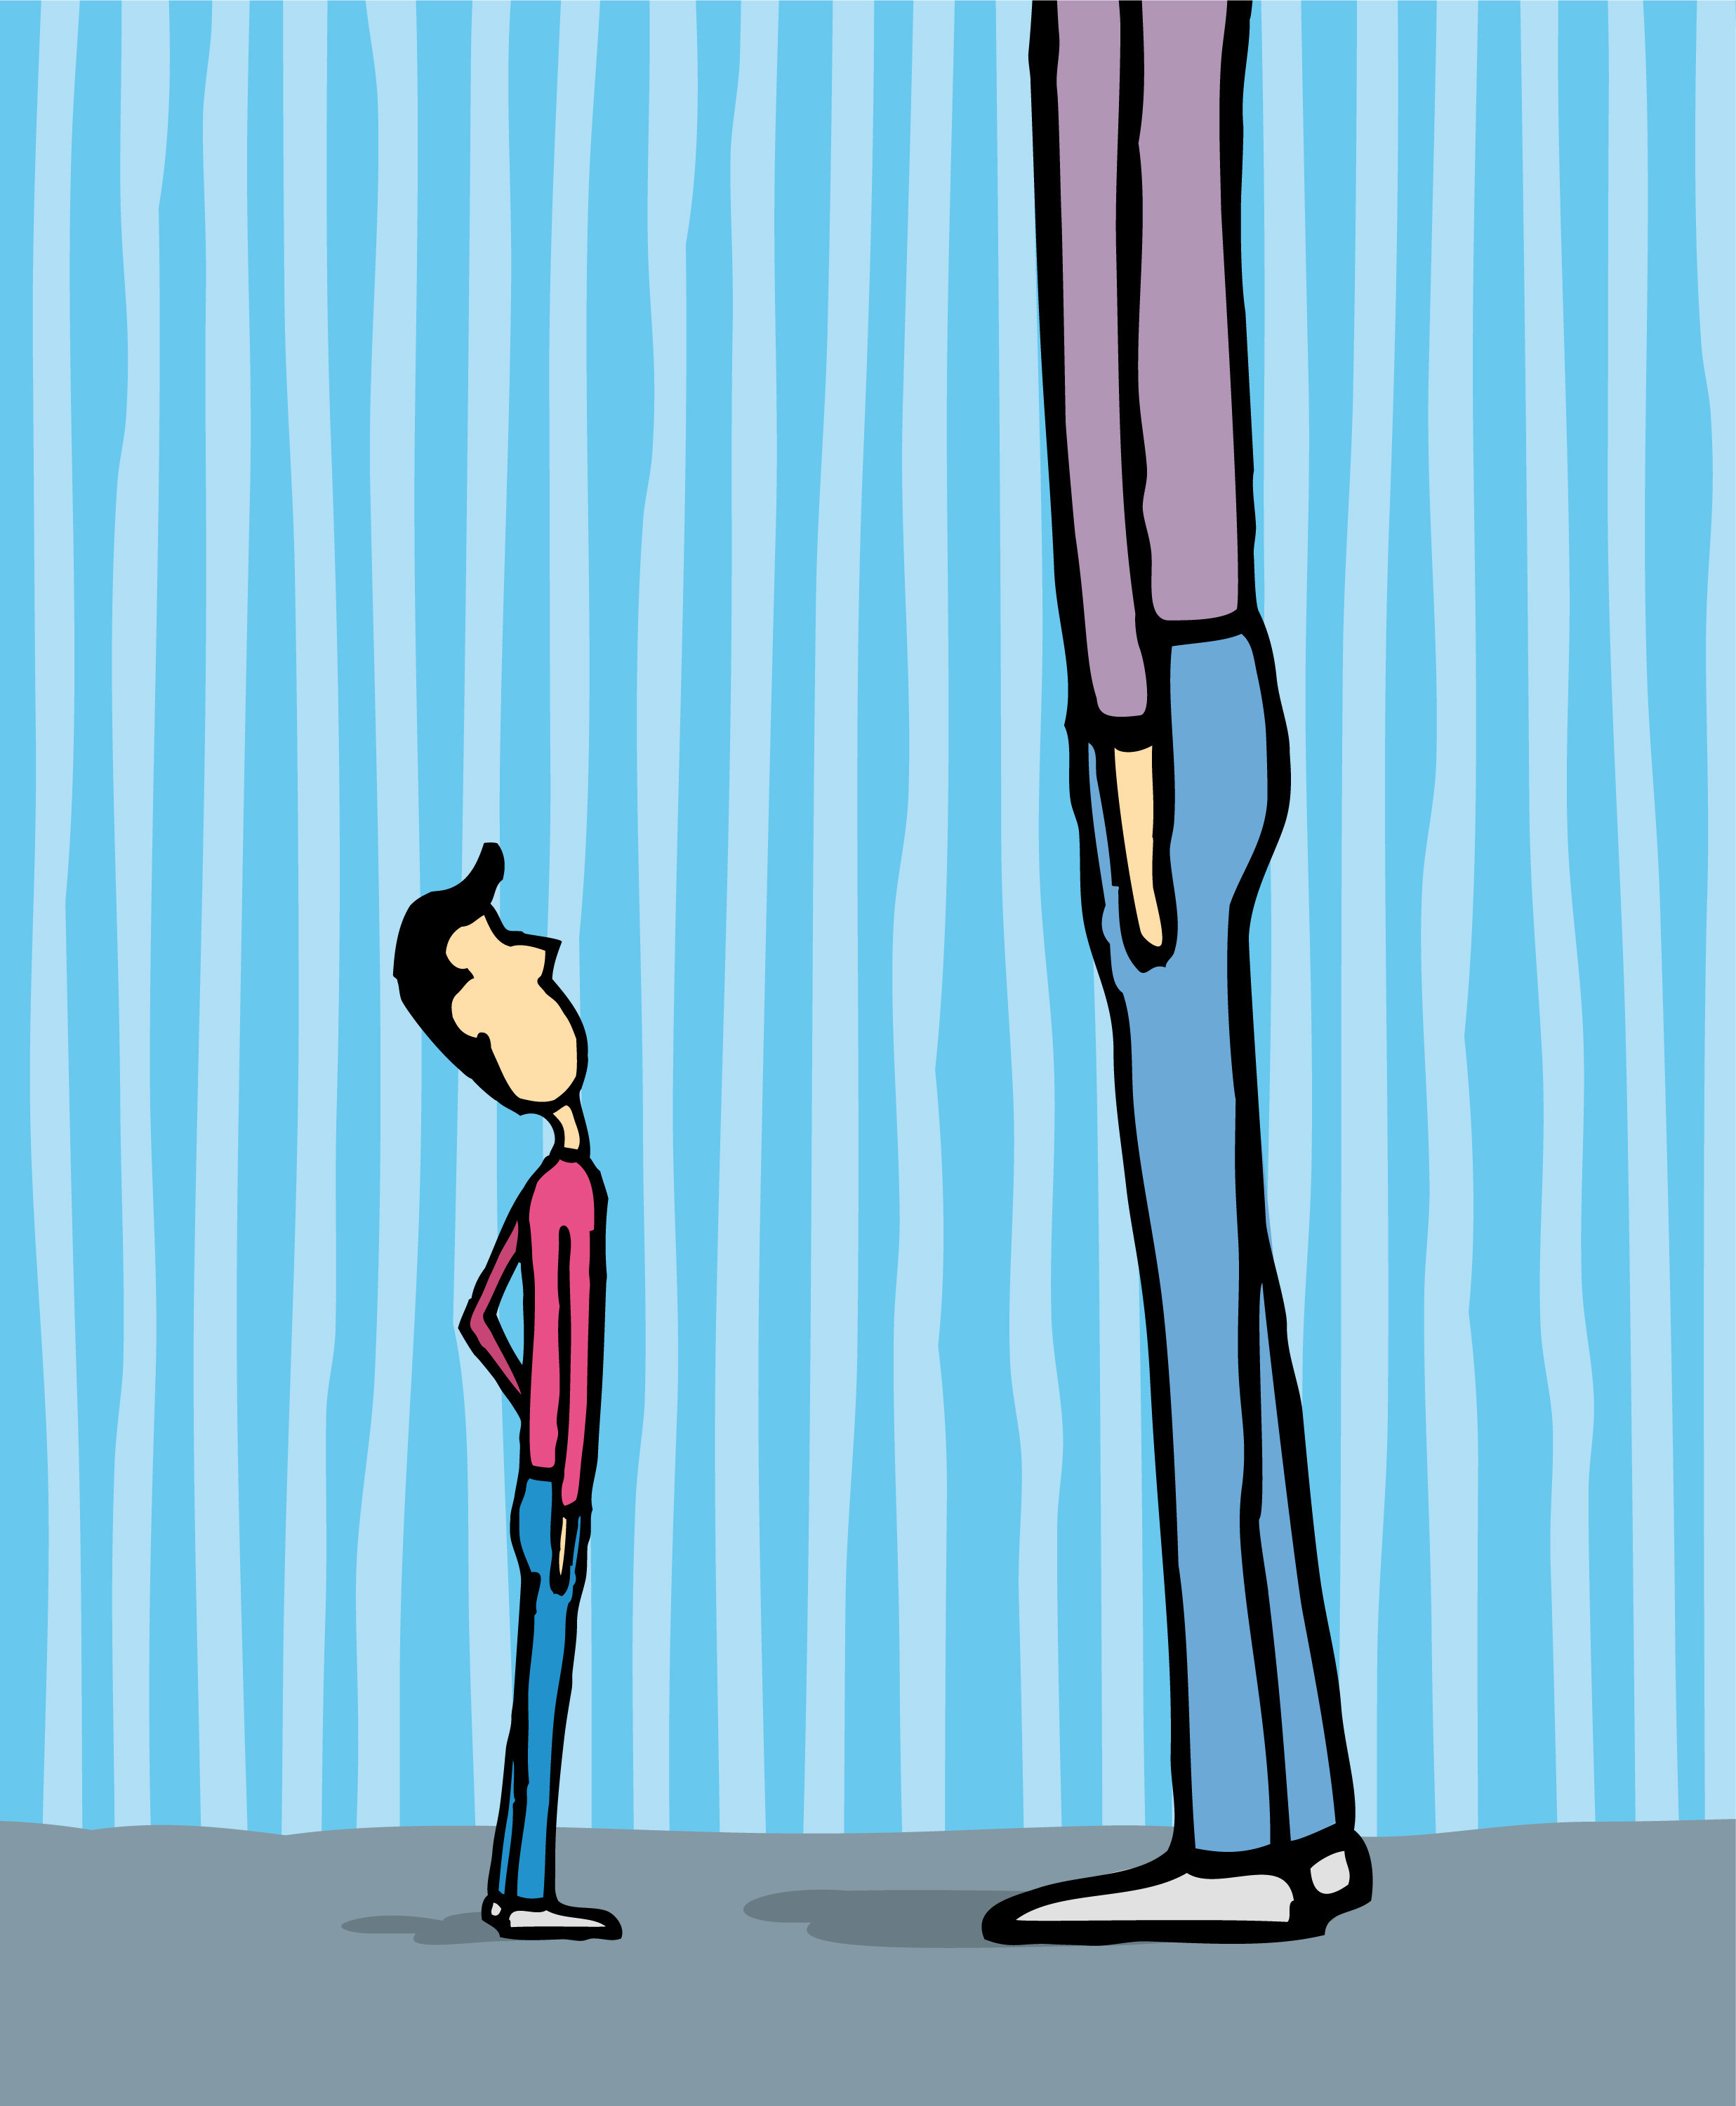 Why are Americans no longer the tallest people in the world? One theory: inequality.